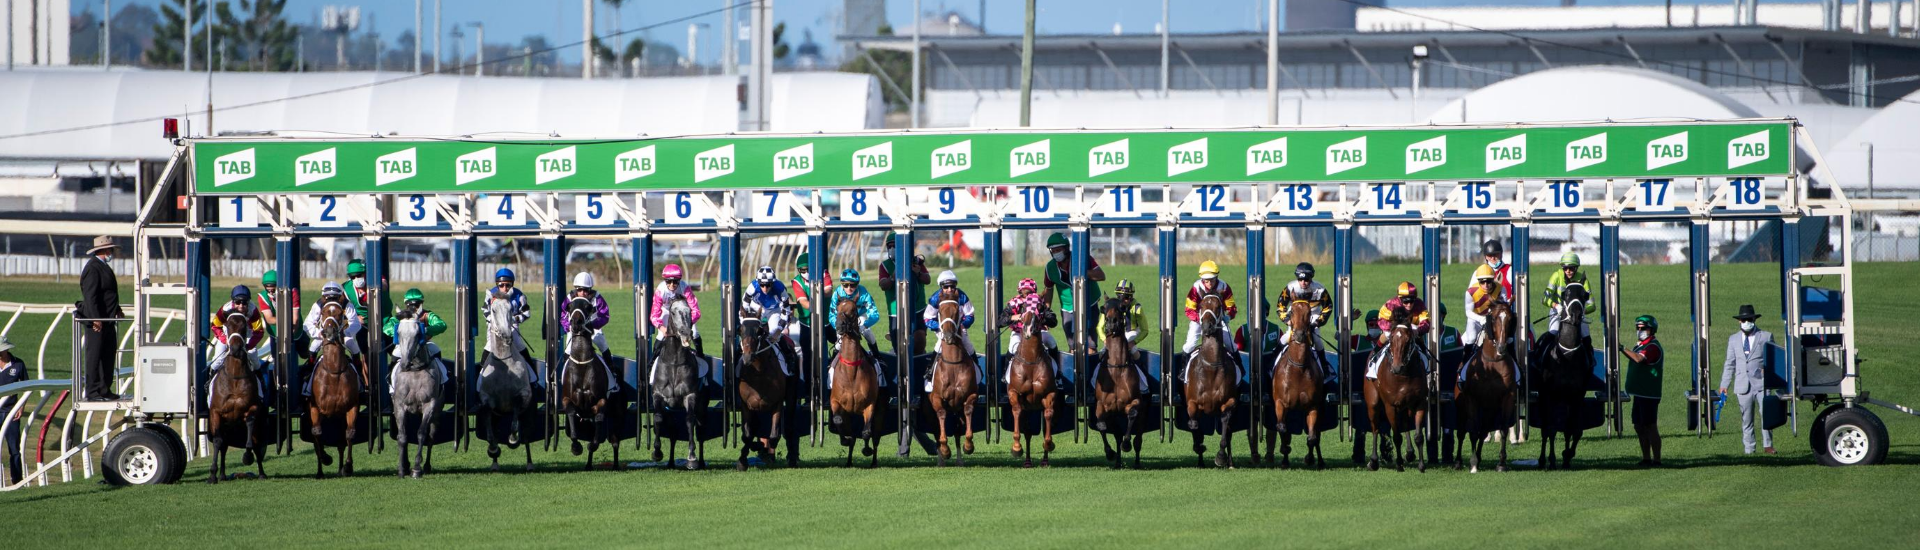 Barriers | Brisbane Racing Club